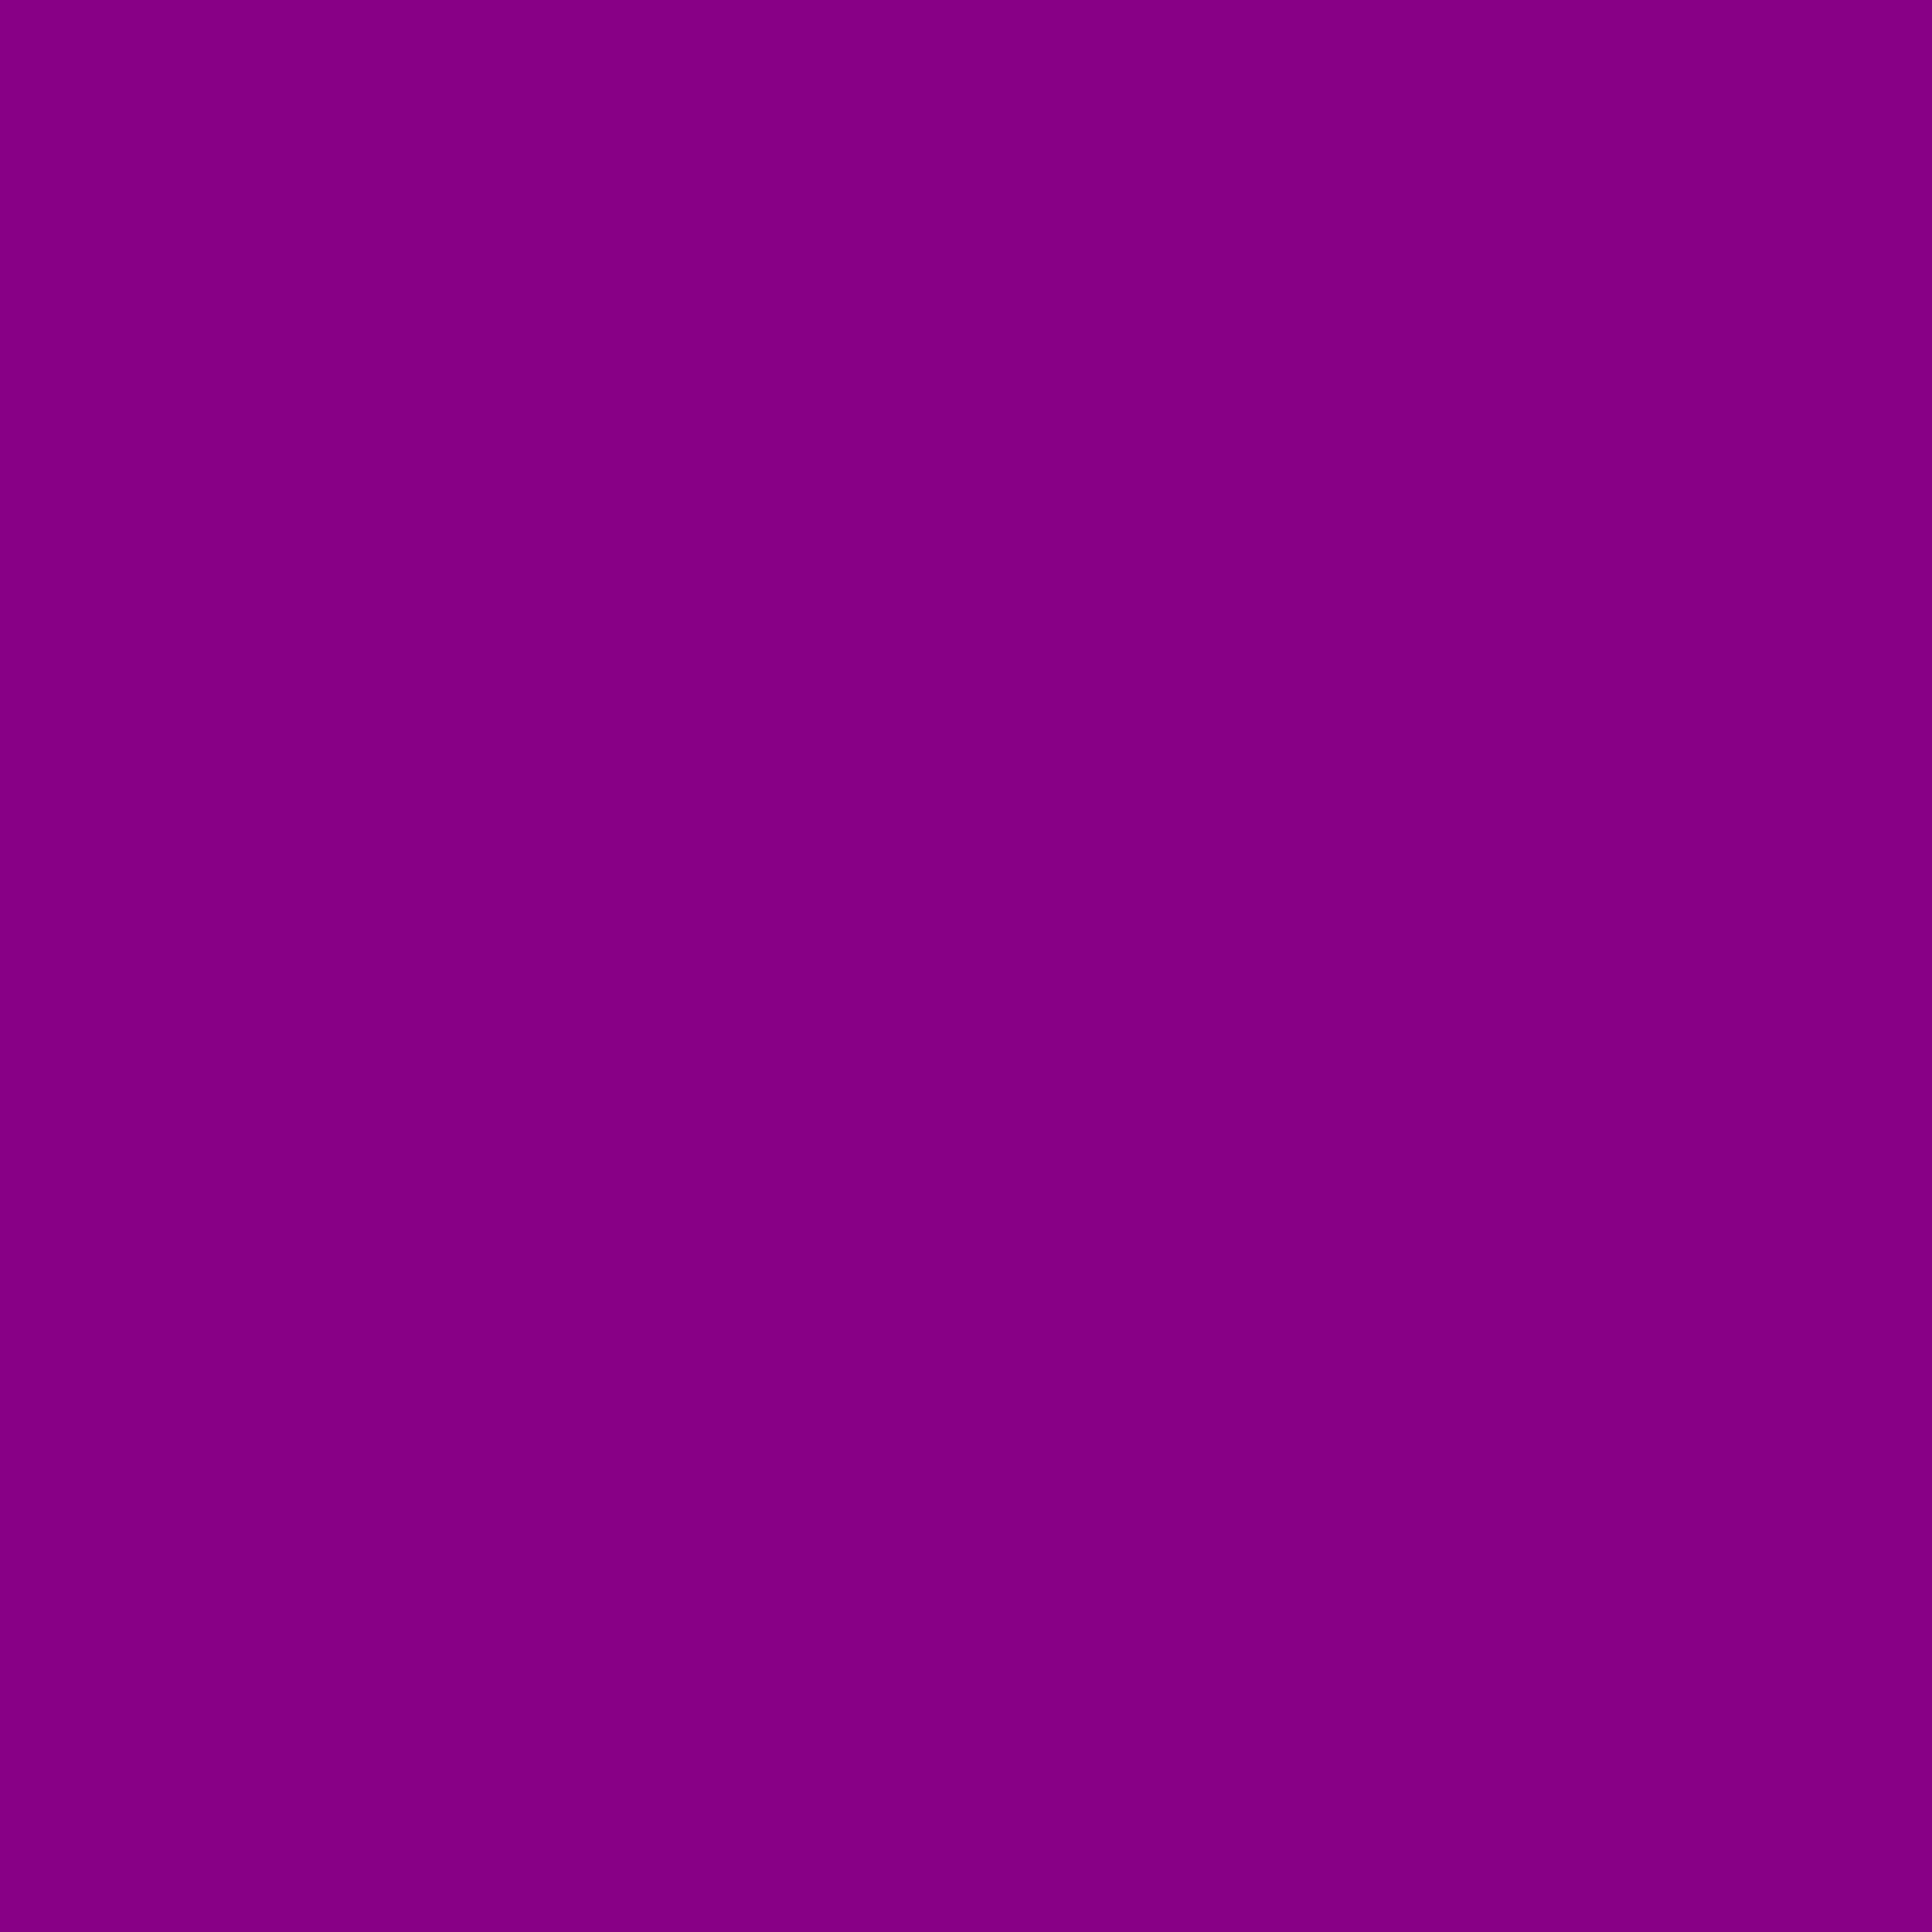 2732x2732 Mardi Gras Solid Color Background